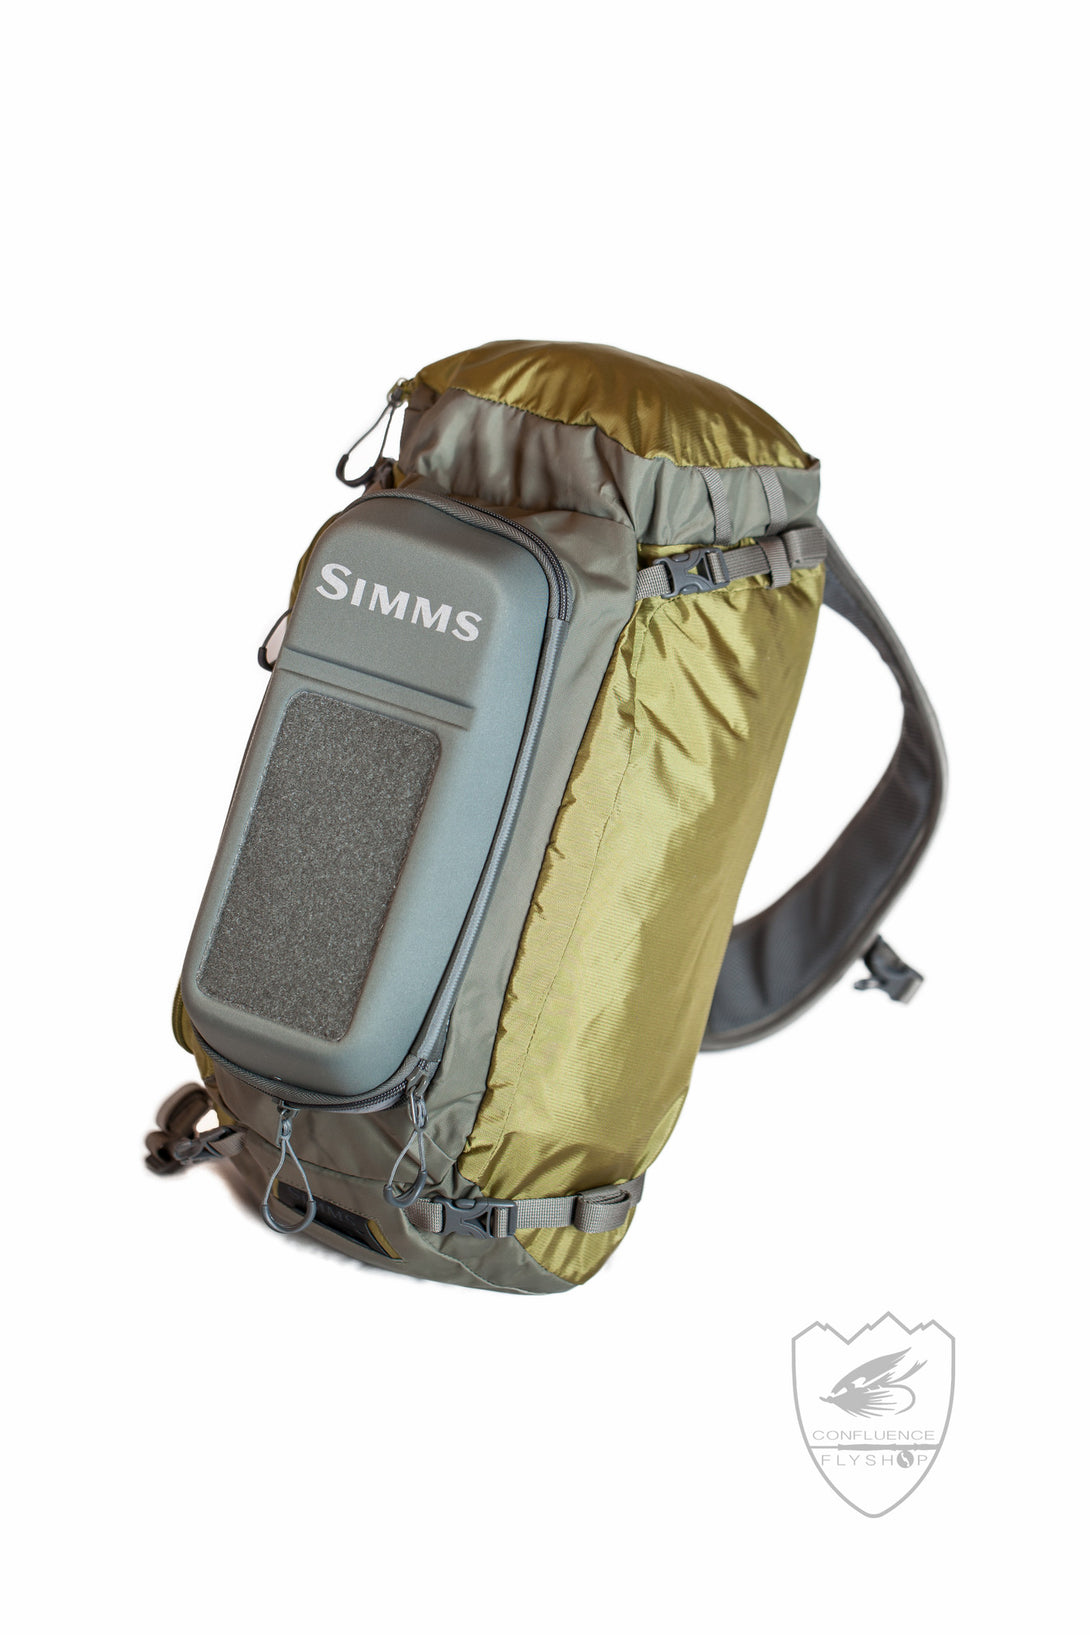 Simms Waypoints Sling Pack Large,Packs,Simms-Confluence Fly Shop